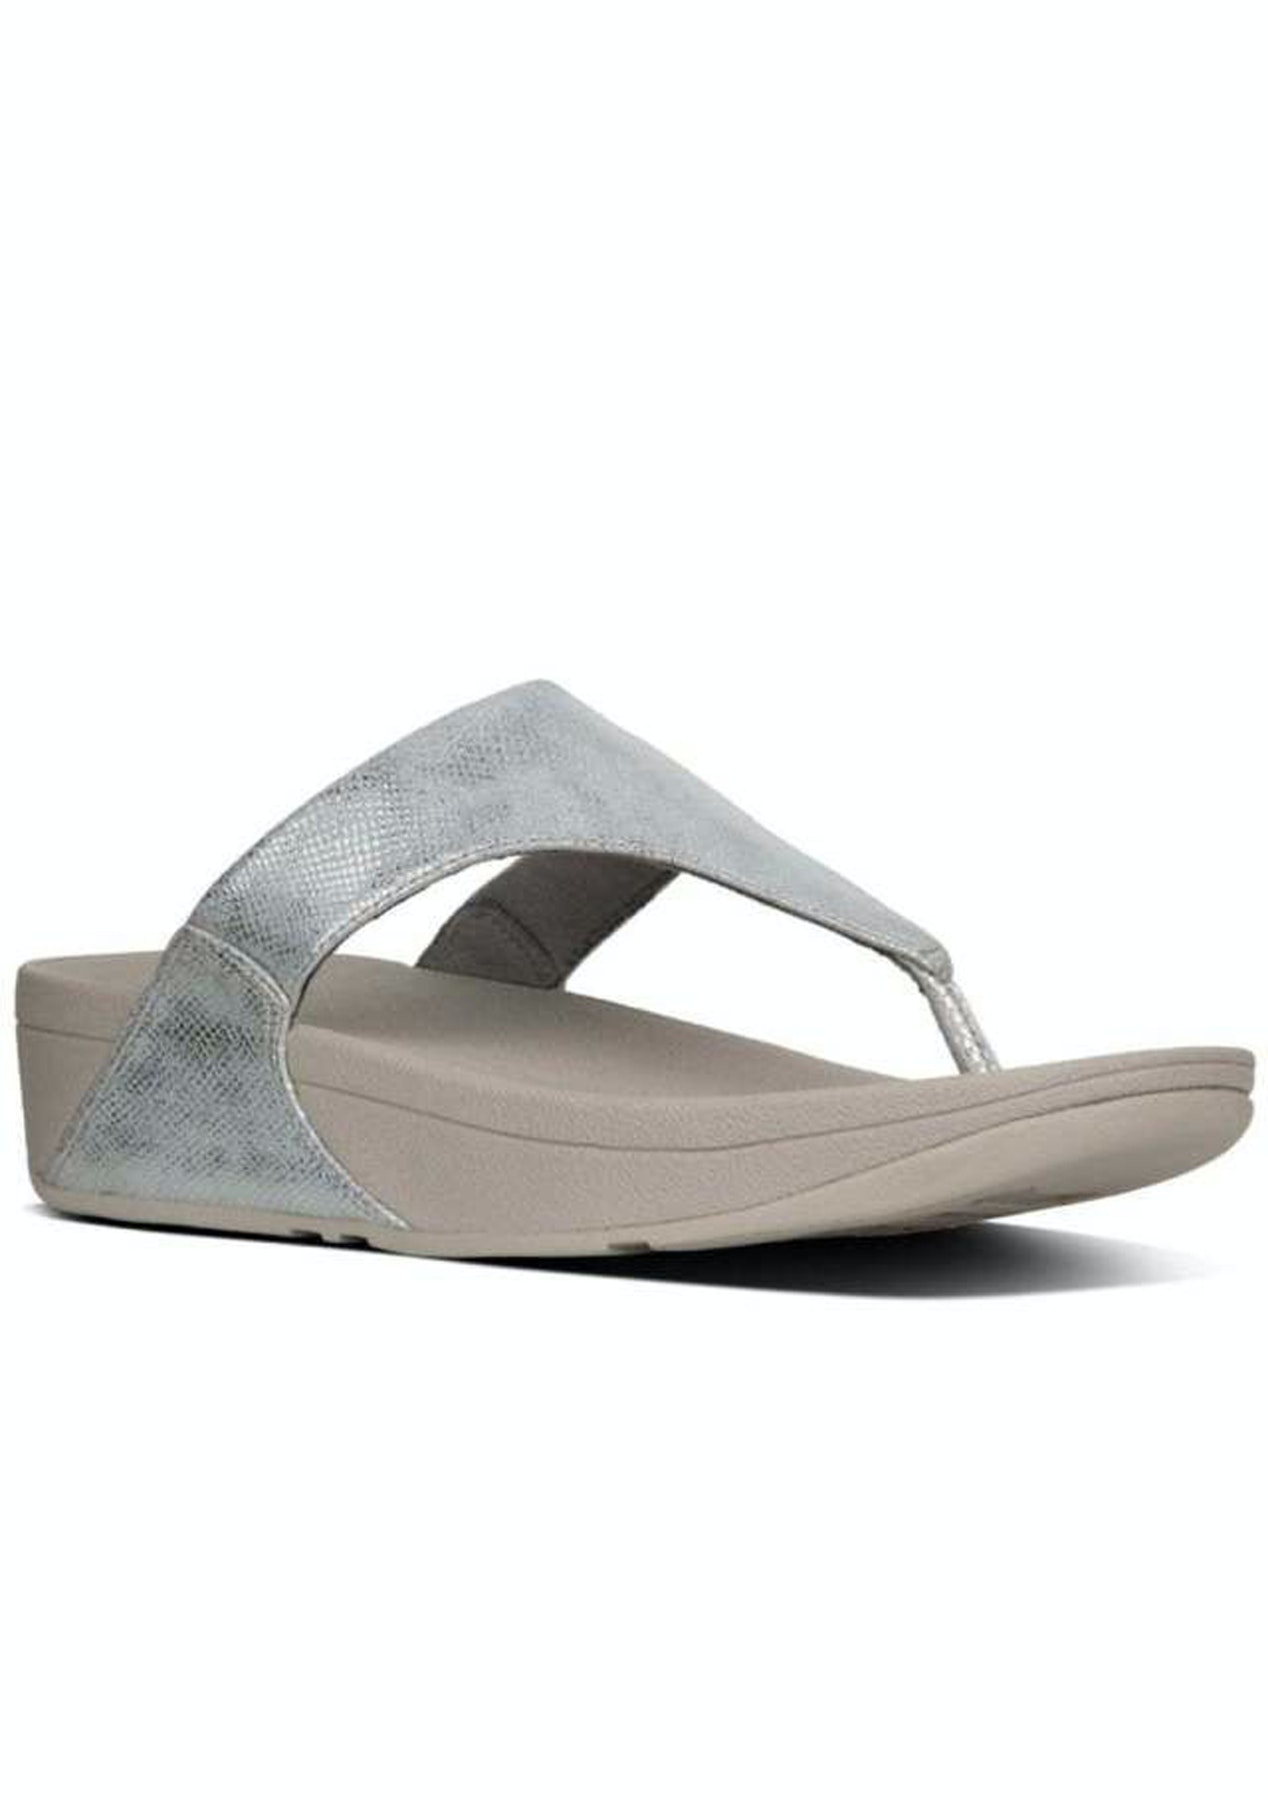 b13d9c888bd Fit Flop - Lulu Toe-Thong Sandals -Silver Shimmer-Print - Fit Flop   More -  Onceit